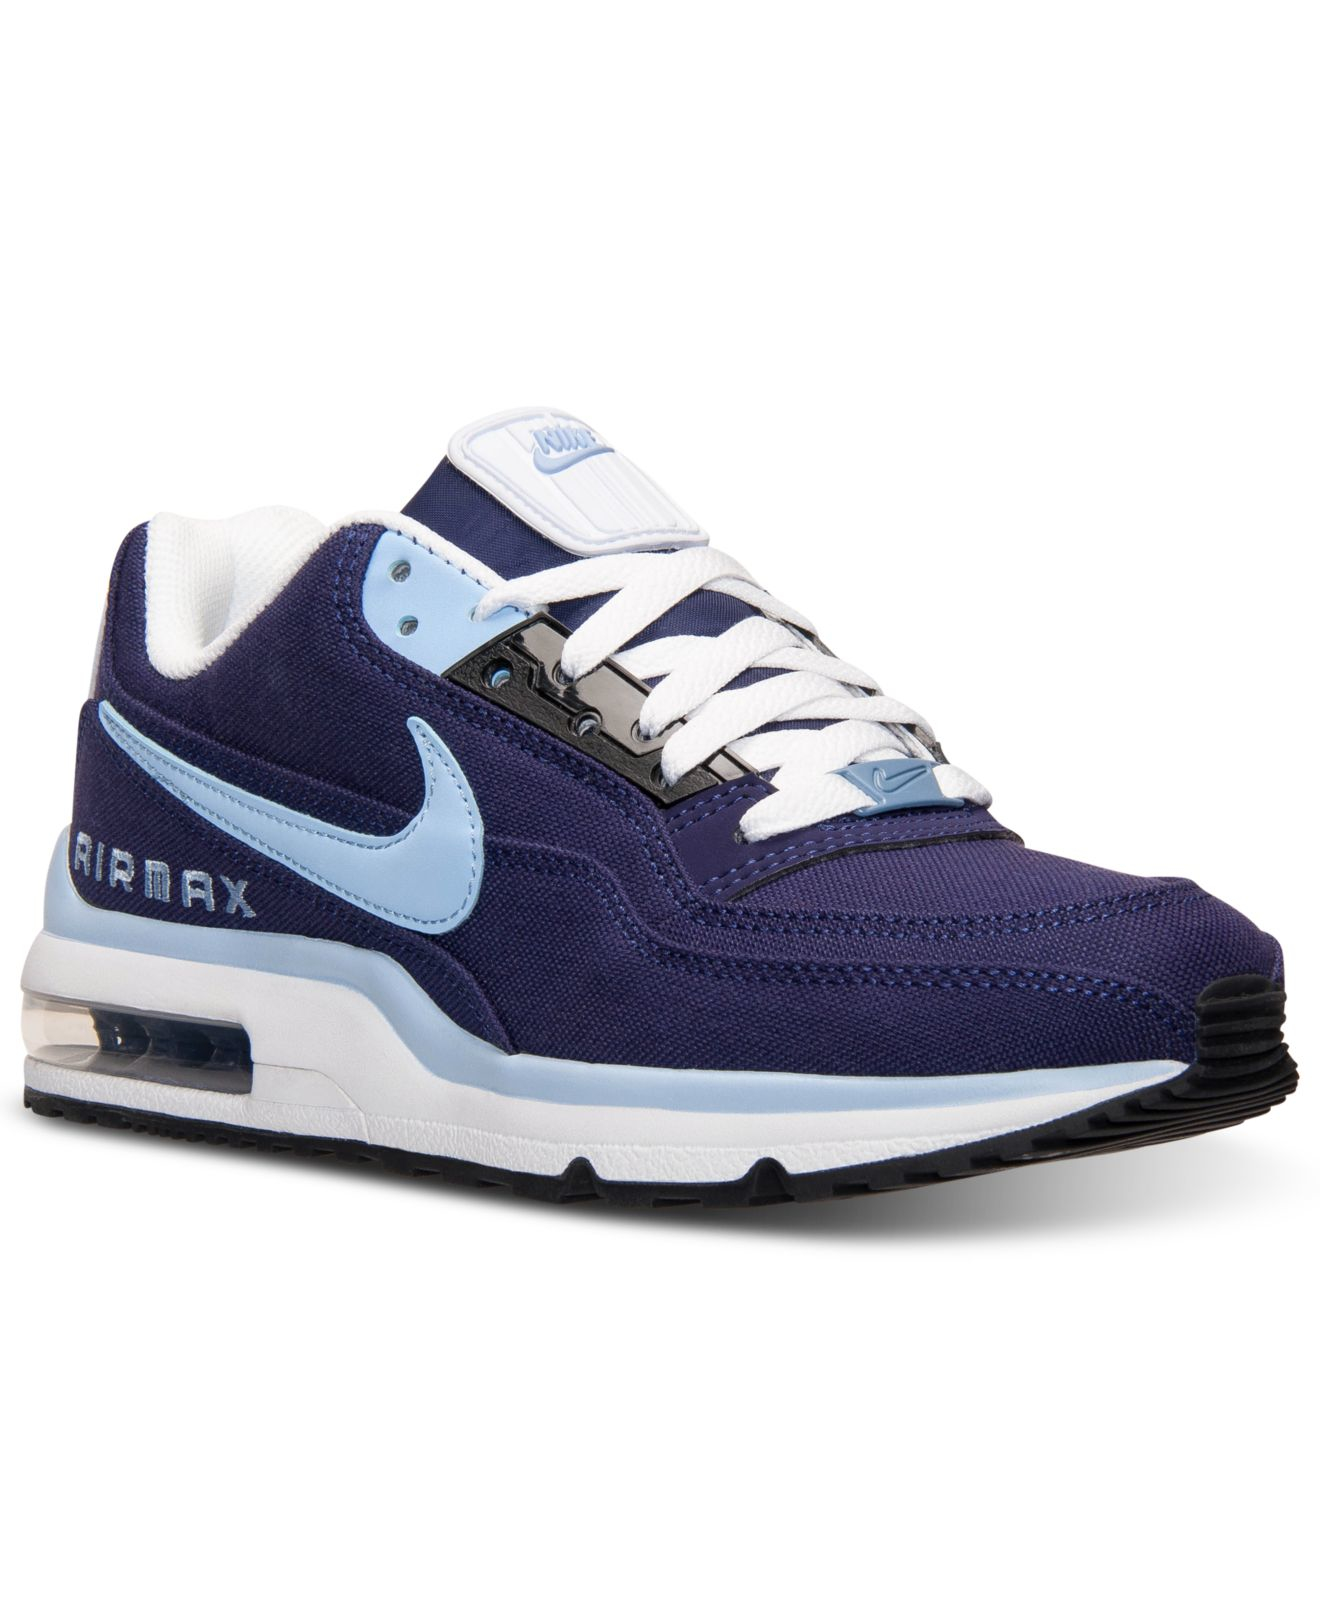 253f5827725 ... Shoes in Wolf GreyCool Lyst - Nike Mens Air Max Ltd 3 Running Sneakers  From Finish ...